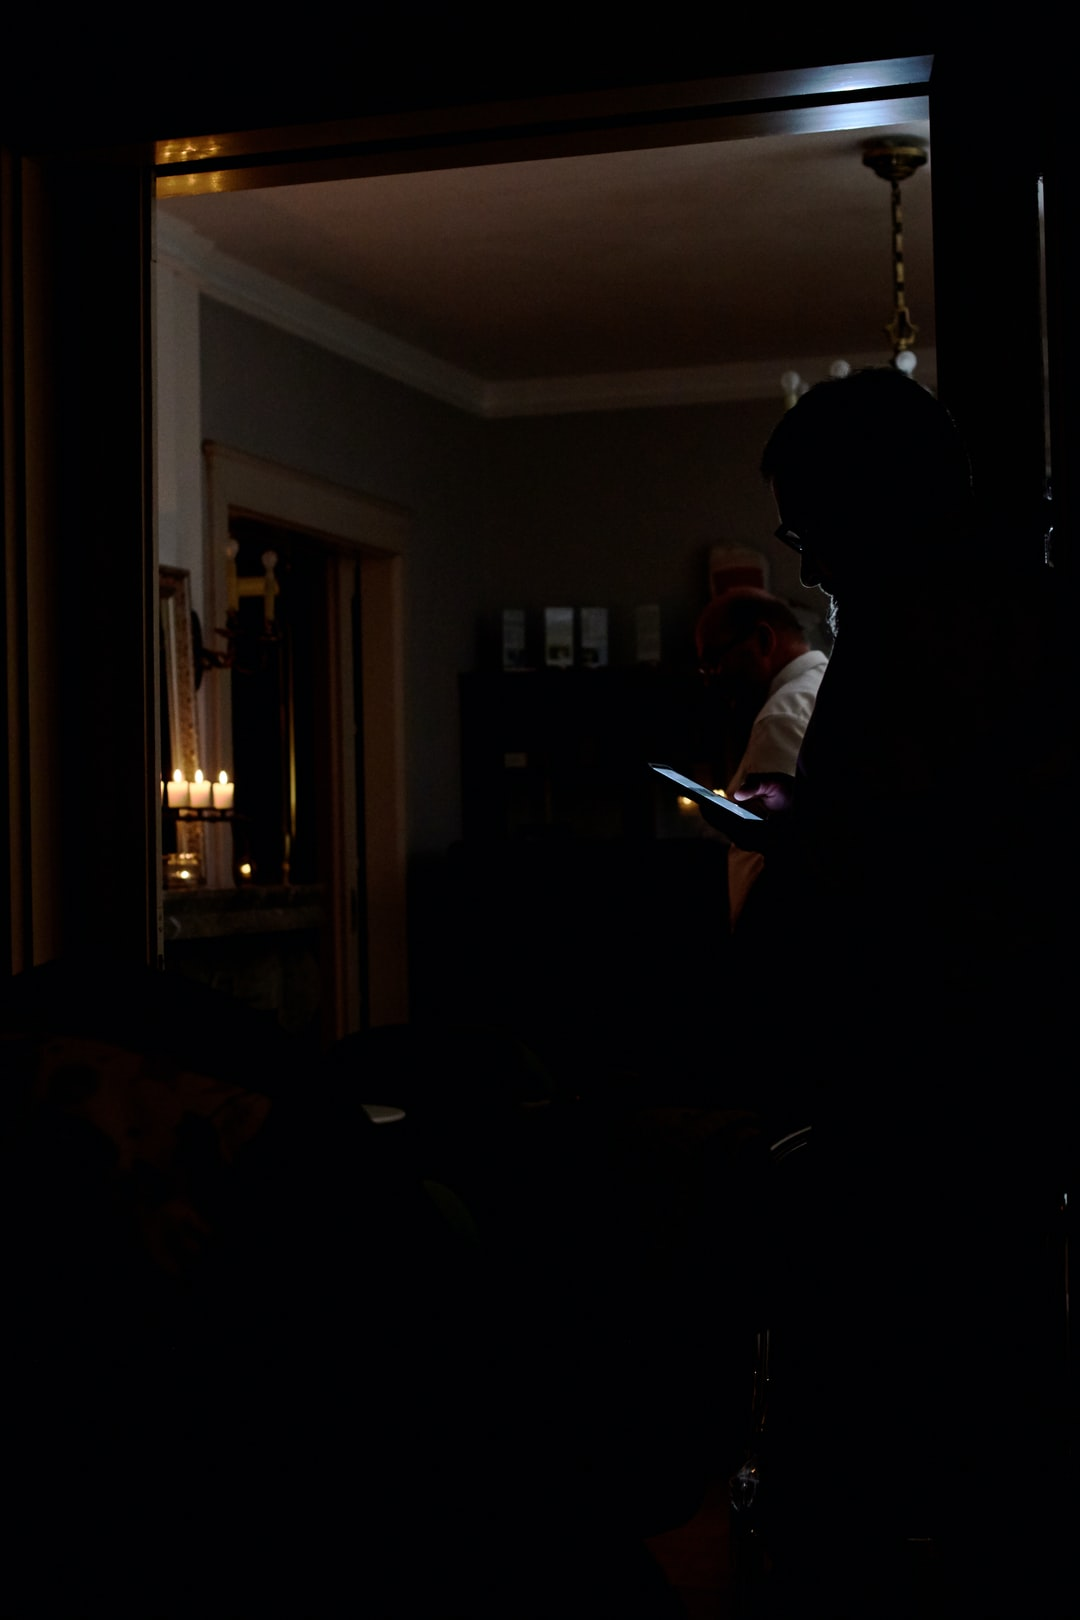 man checking his smartphone in a moody lit room.